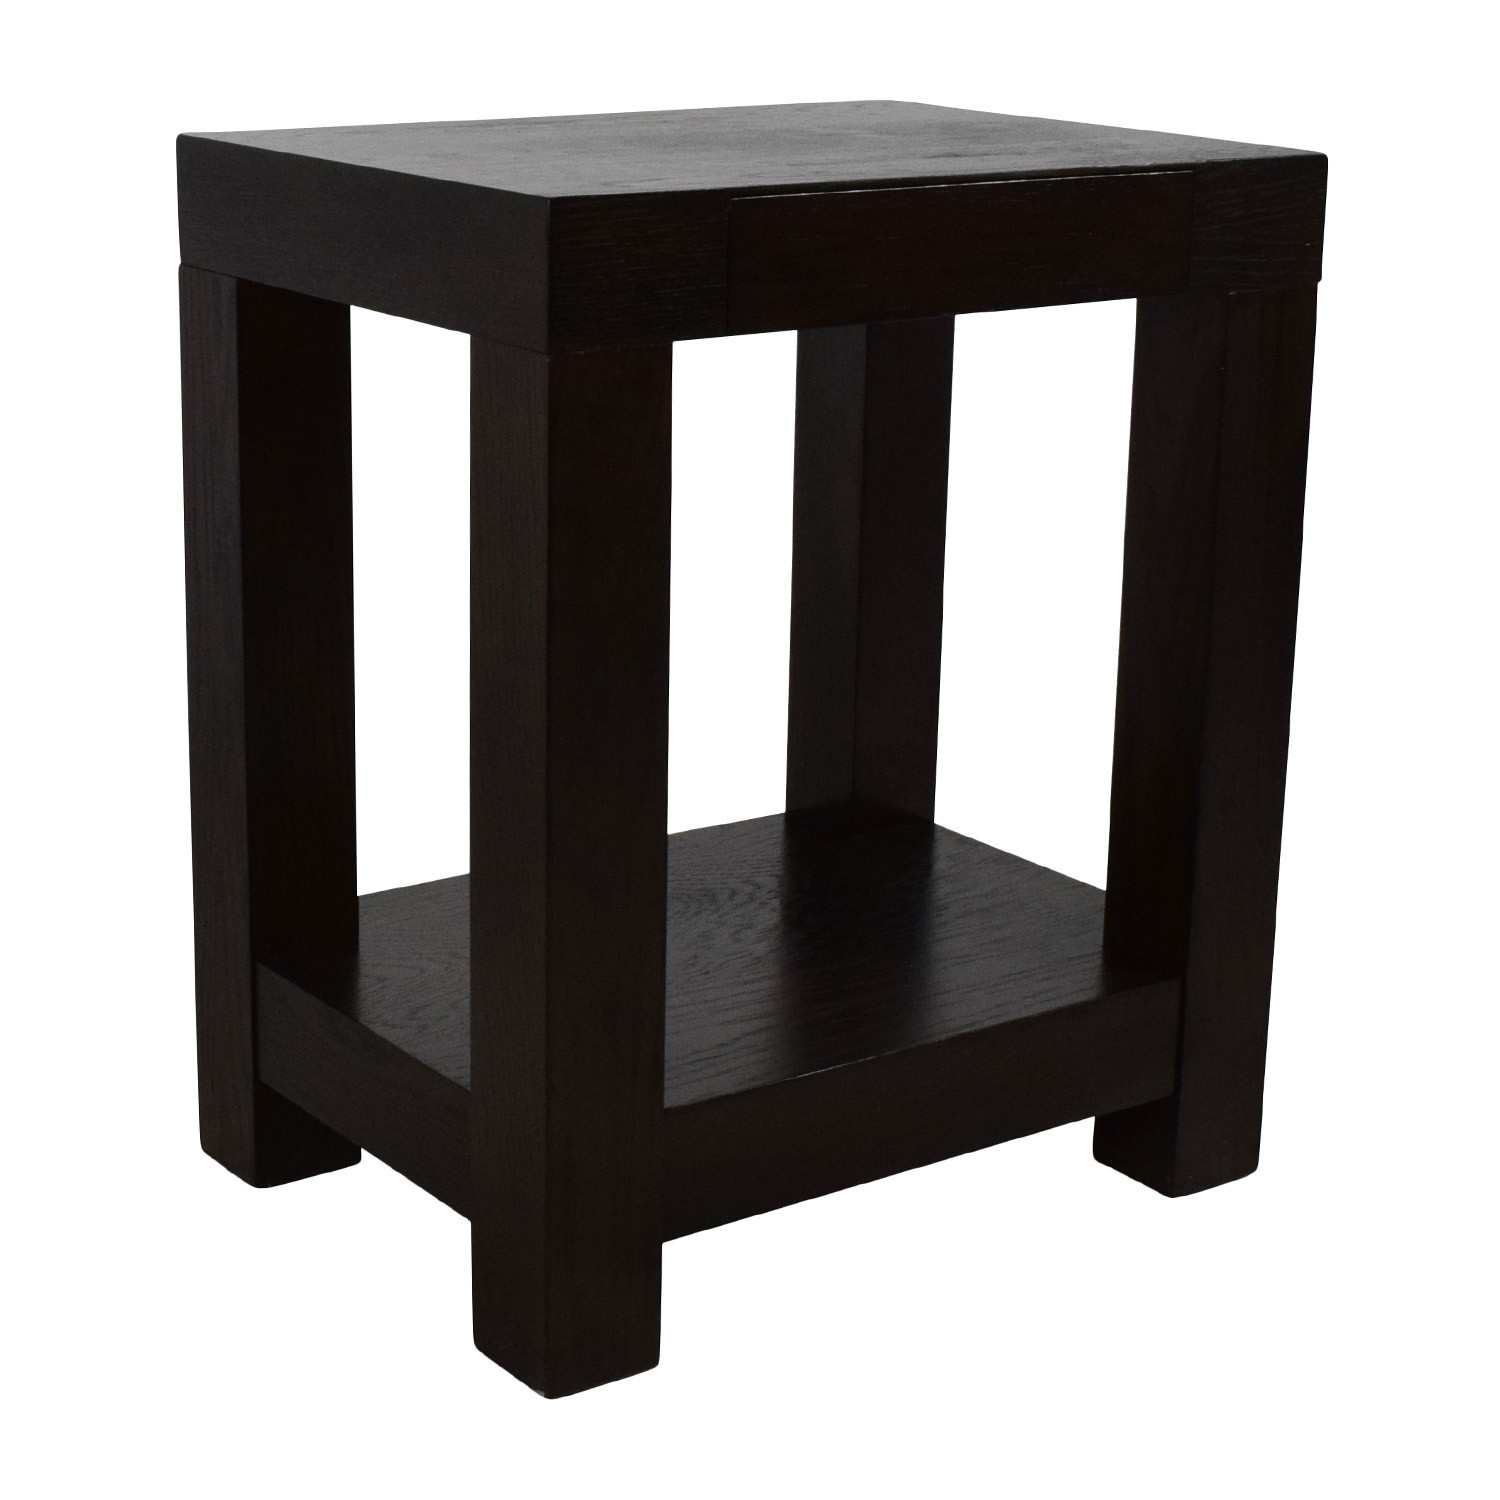 best west elm accent table for martini side ideas off parsons end tables antique nightstands kitchen linens lighting seattle ikea tall with drawer coffee small nesting chairs